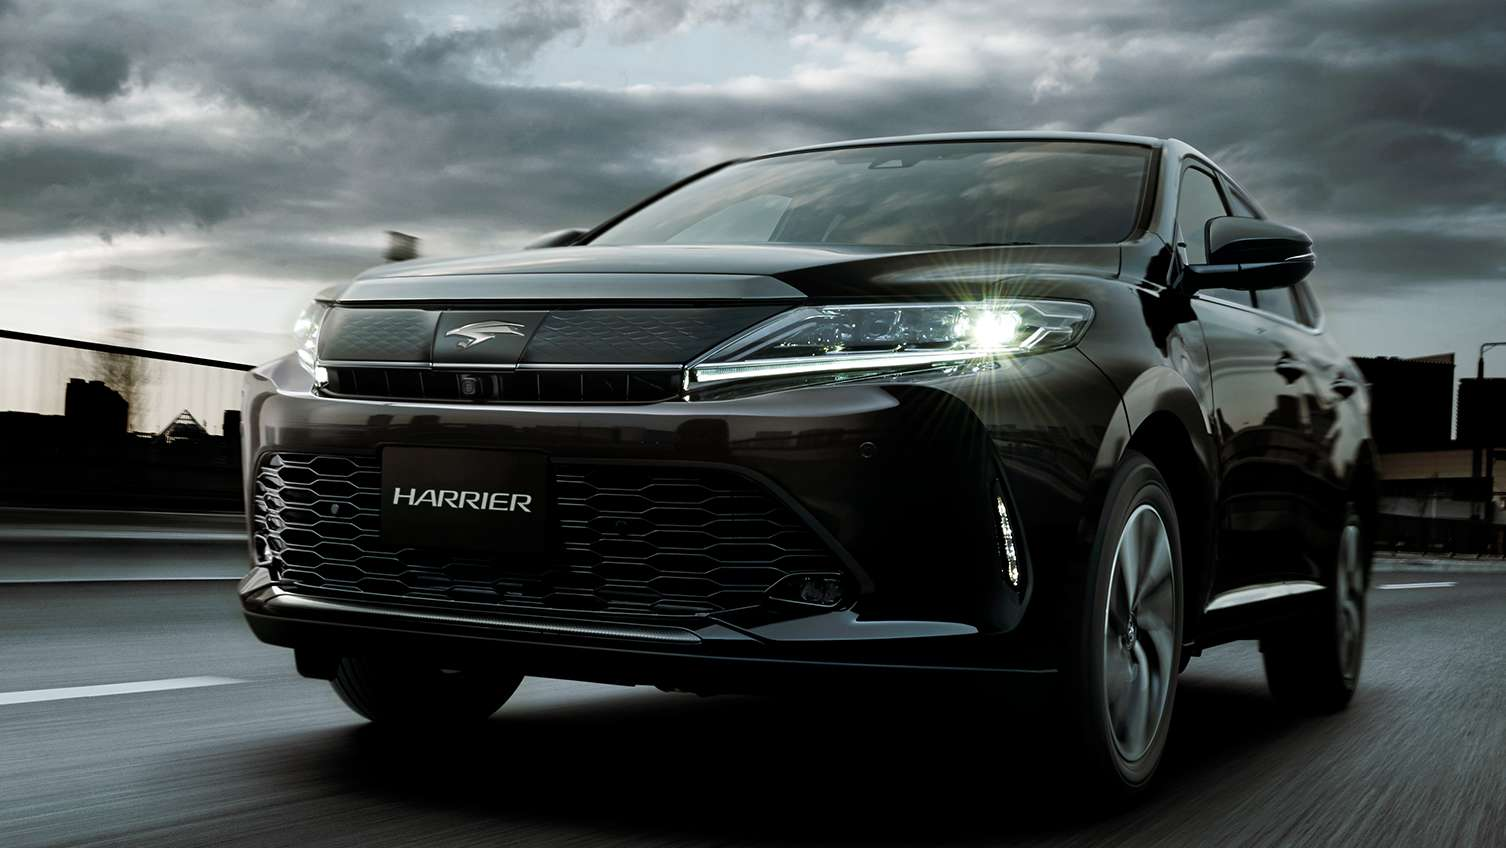 toyota harrier facelift makes japan debut - 2.0 turbo; singapore